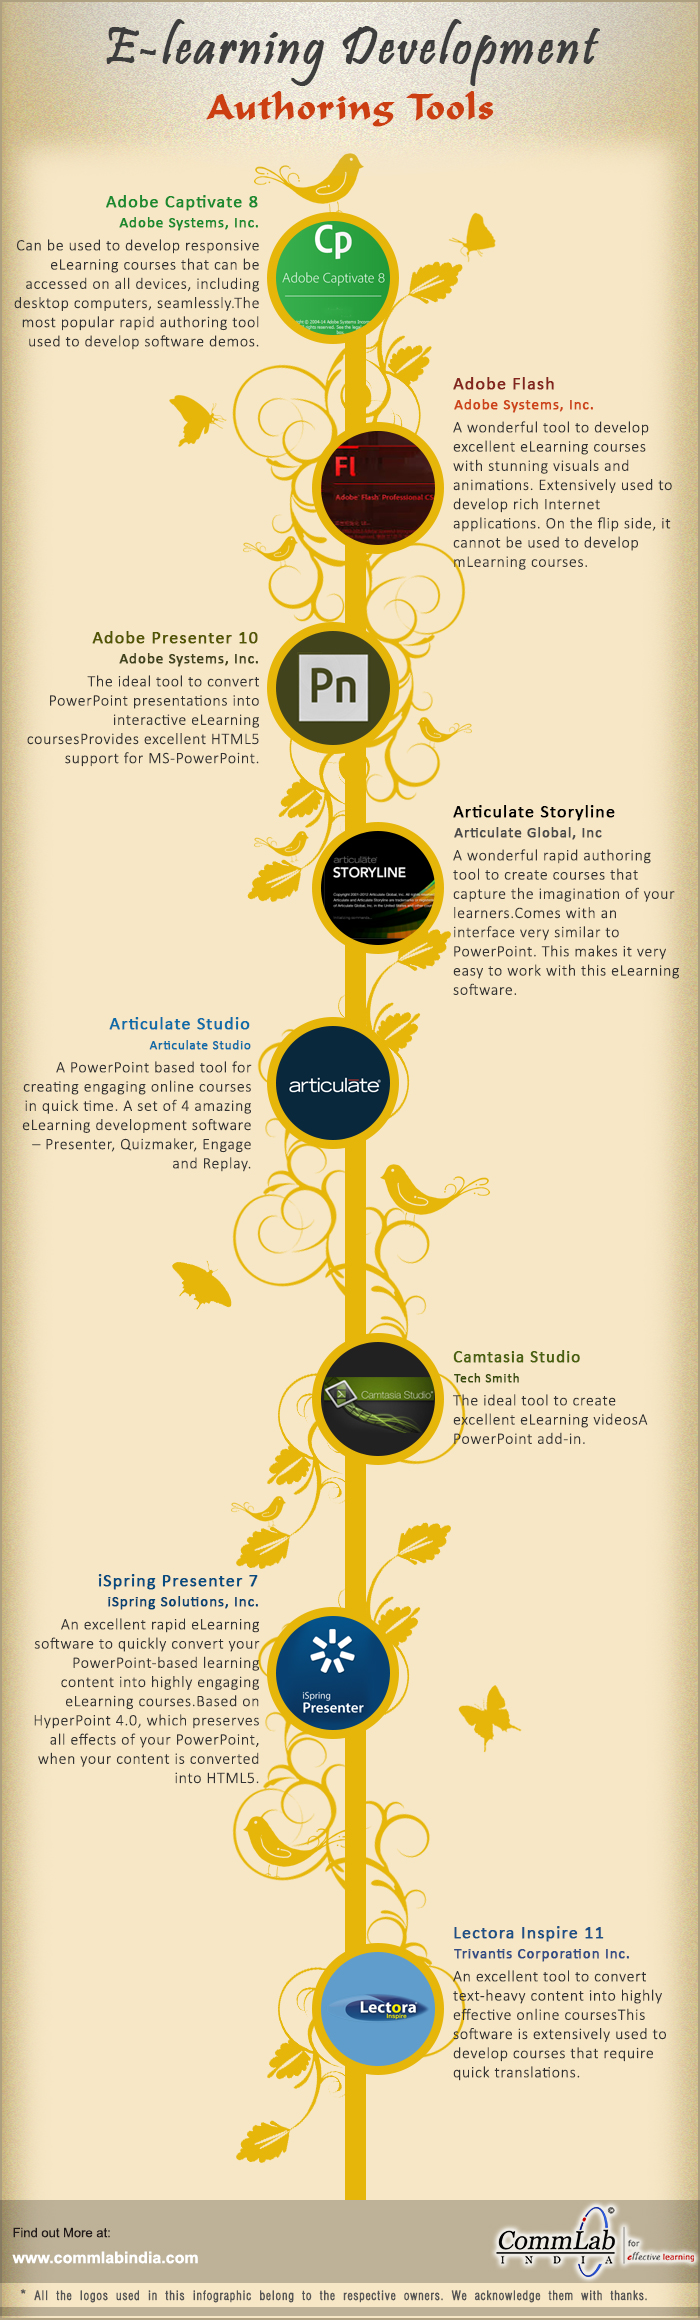 Incredible Authoring Tools for Developing First-Rate Online Courses [Infographic]